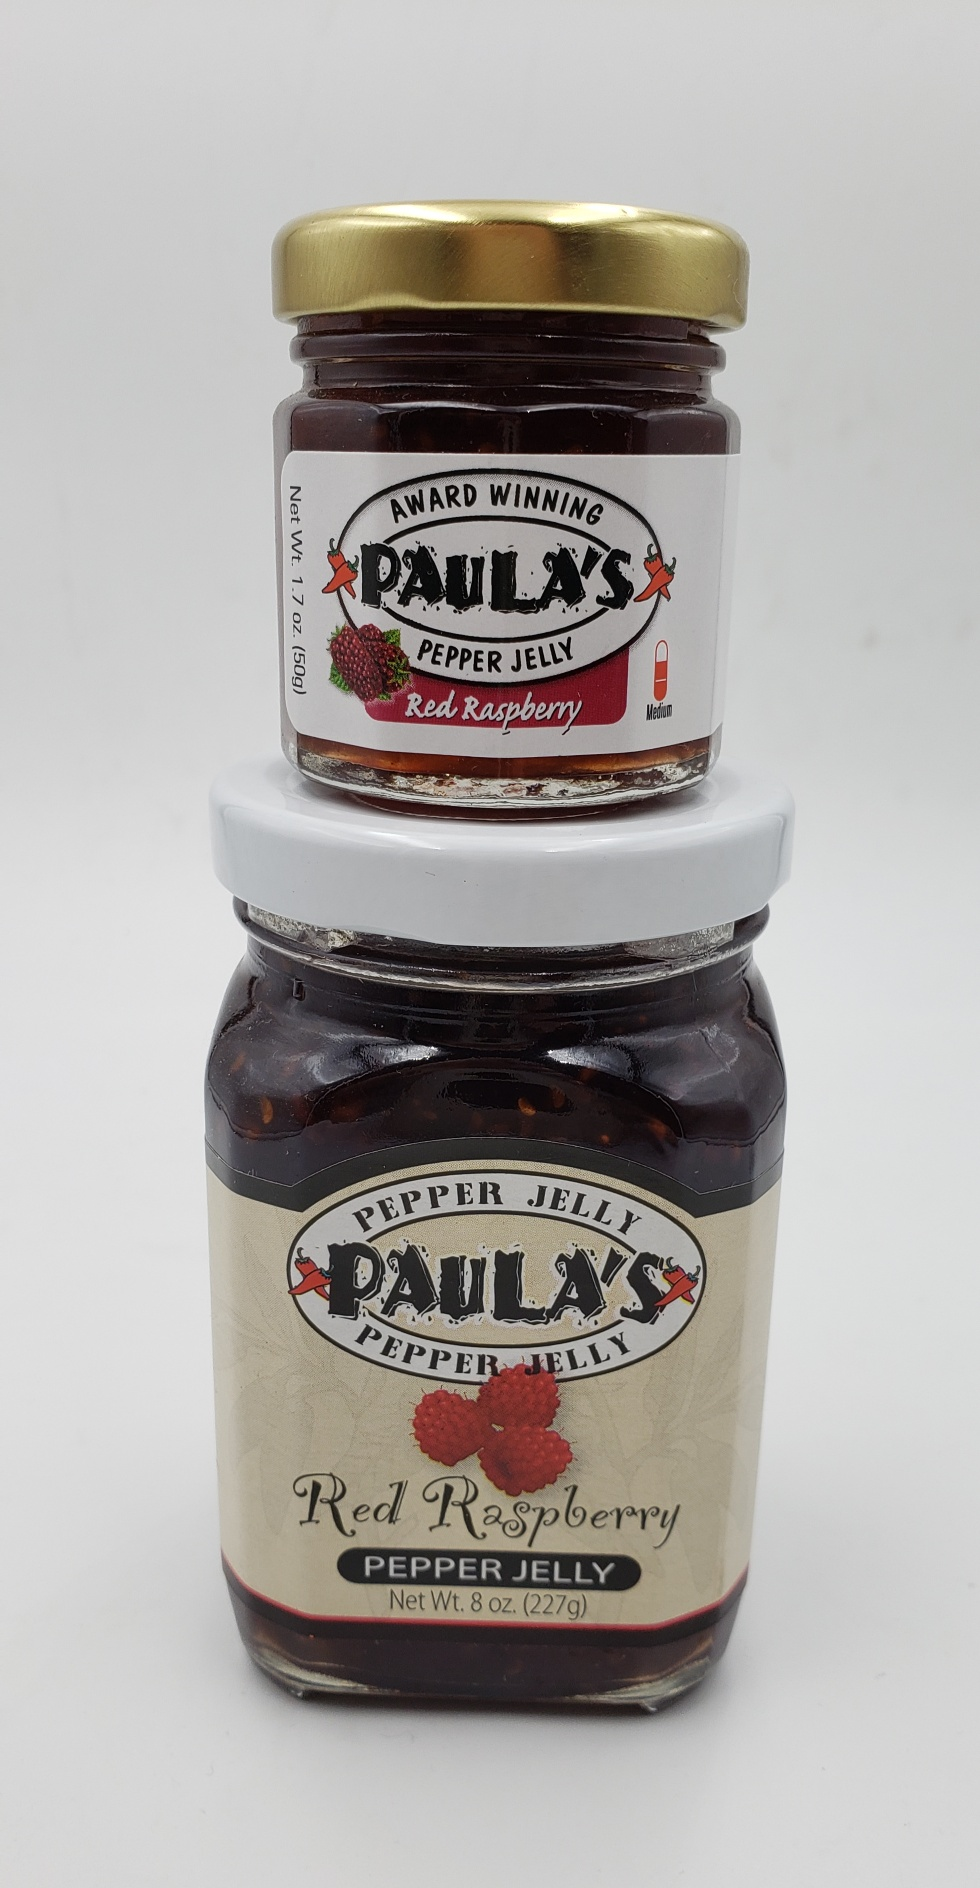 1.7 oz. Paula's Pepper Jelly jar on top of the 8 oz. Paula's Red Raspberry Pepper Jelly jar. Both are label out and full of pepper jelly.